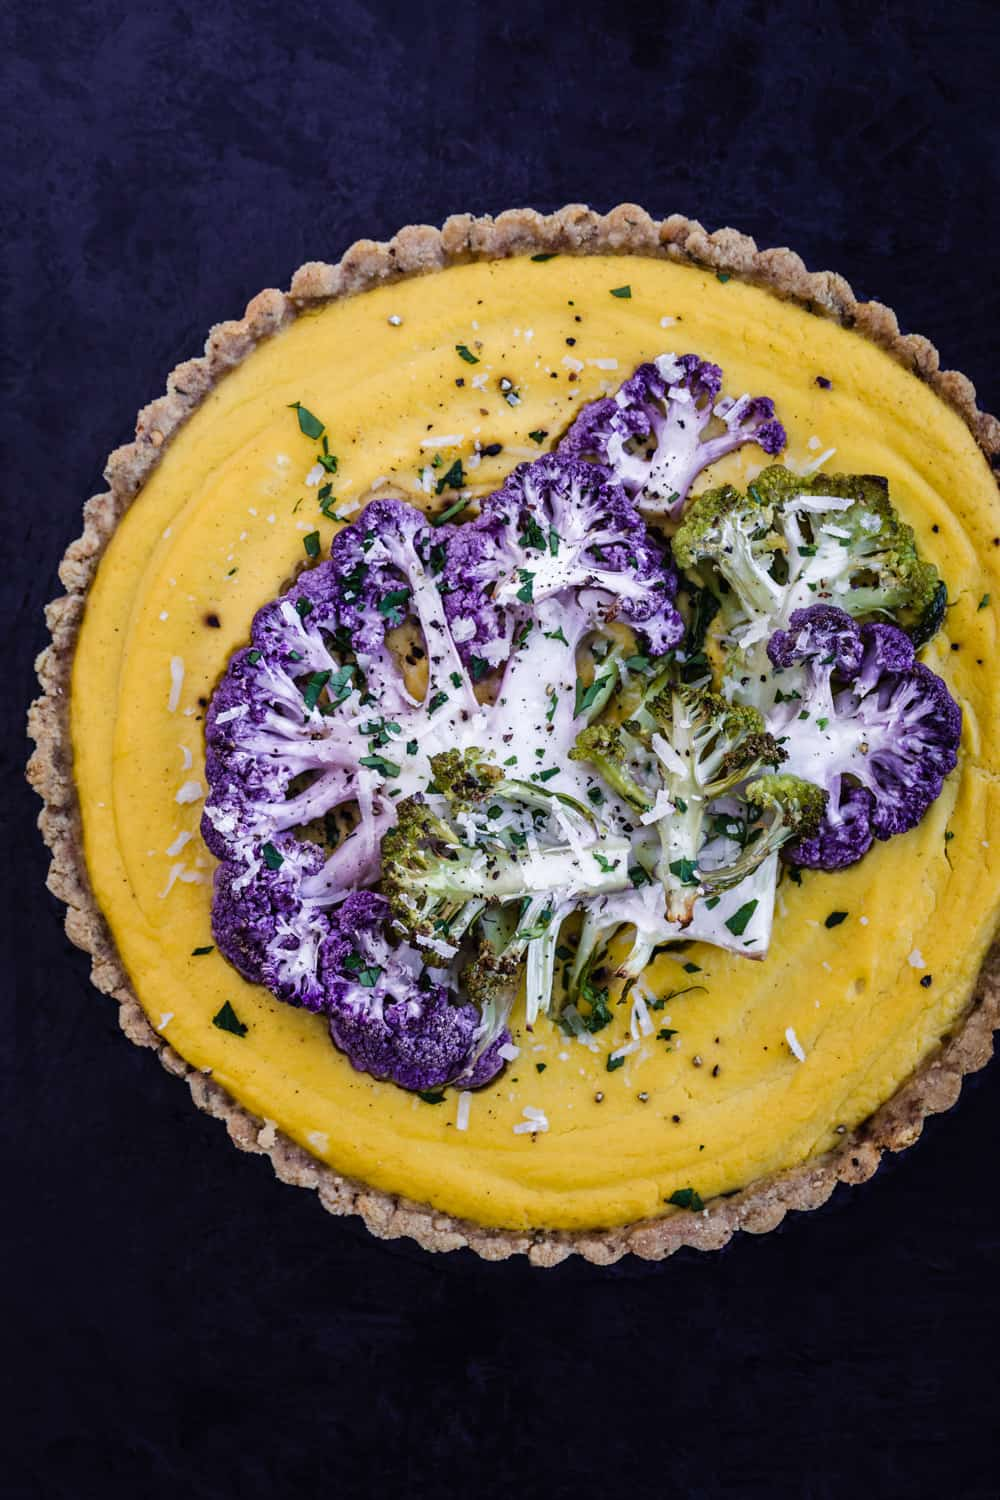 Yellow cauliflower tart, topped with purple and green thinly sliced cauliflower, post-oven.